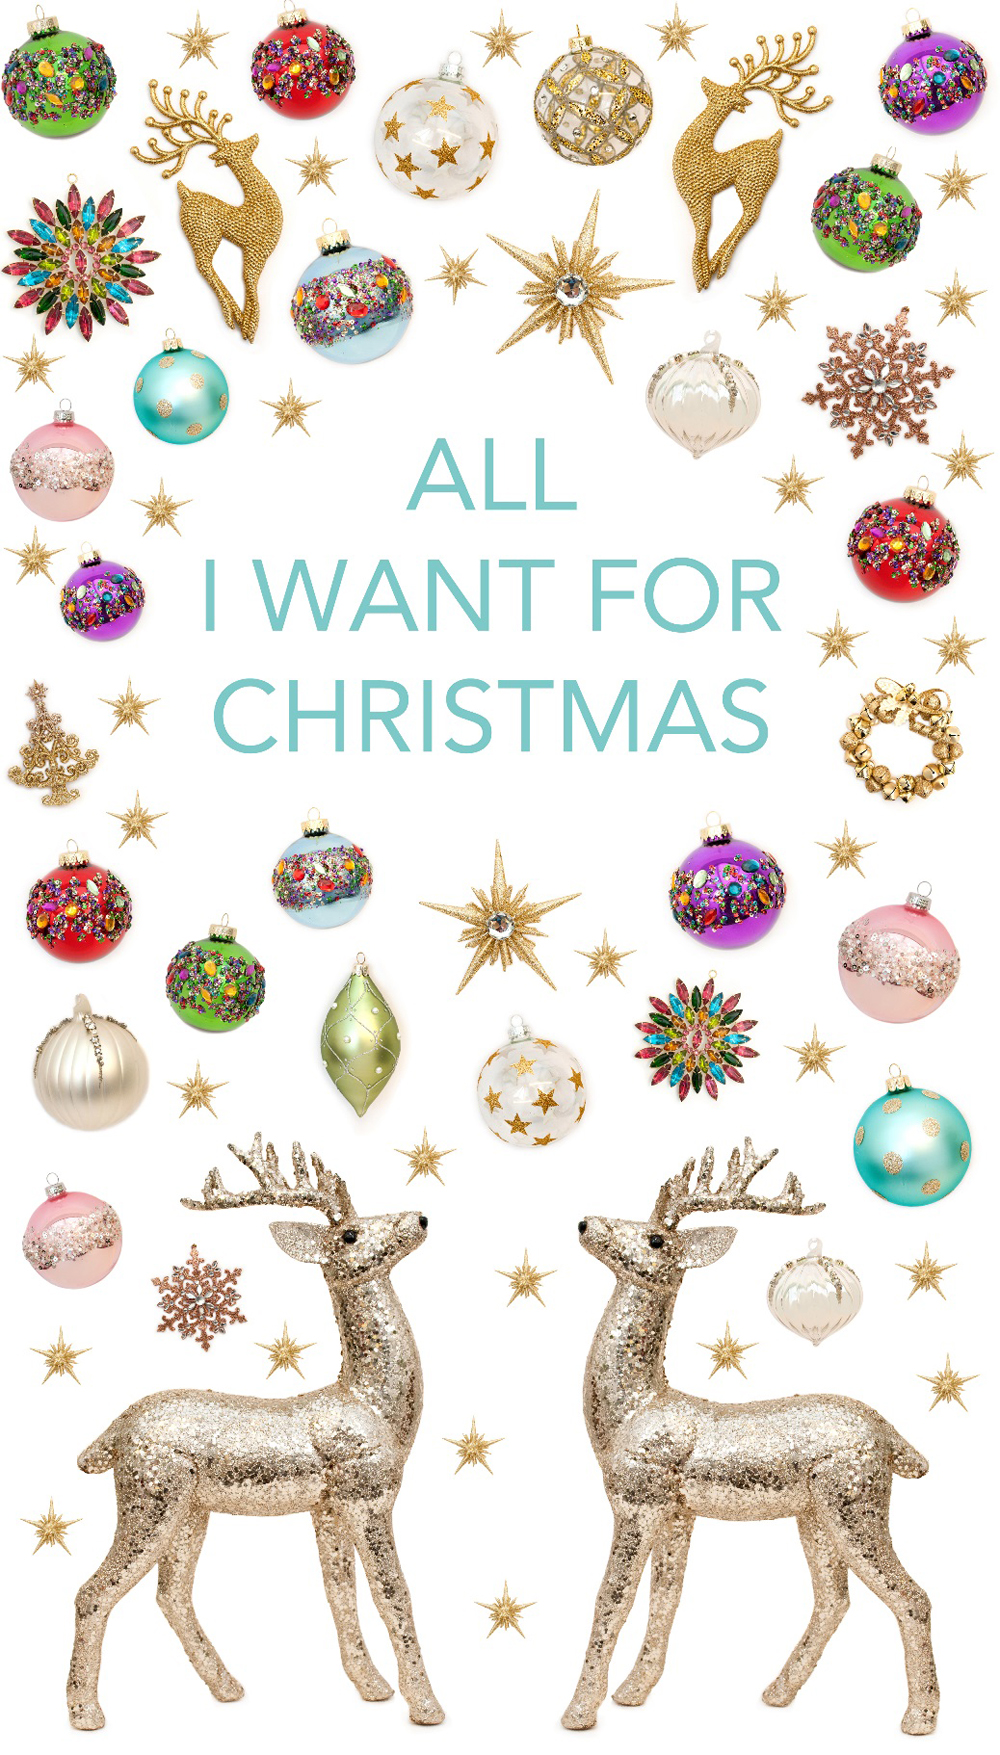 Jenny Blanc Blog - All I Want For Christmas